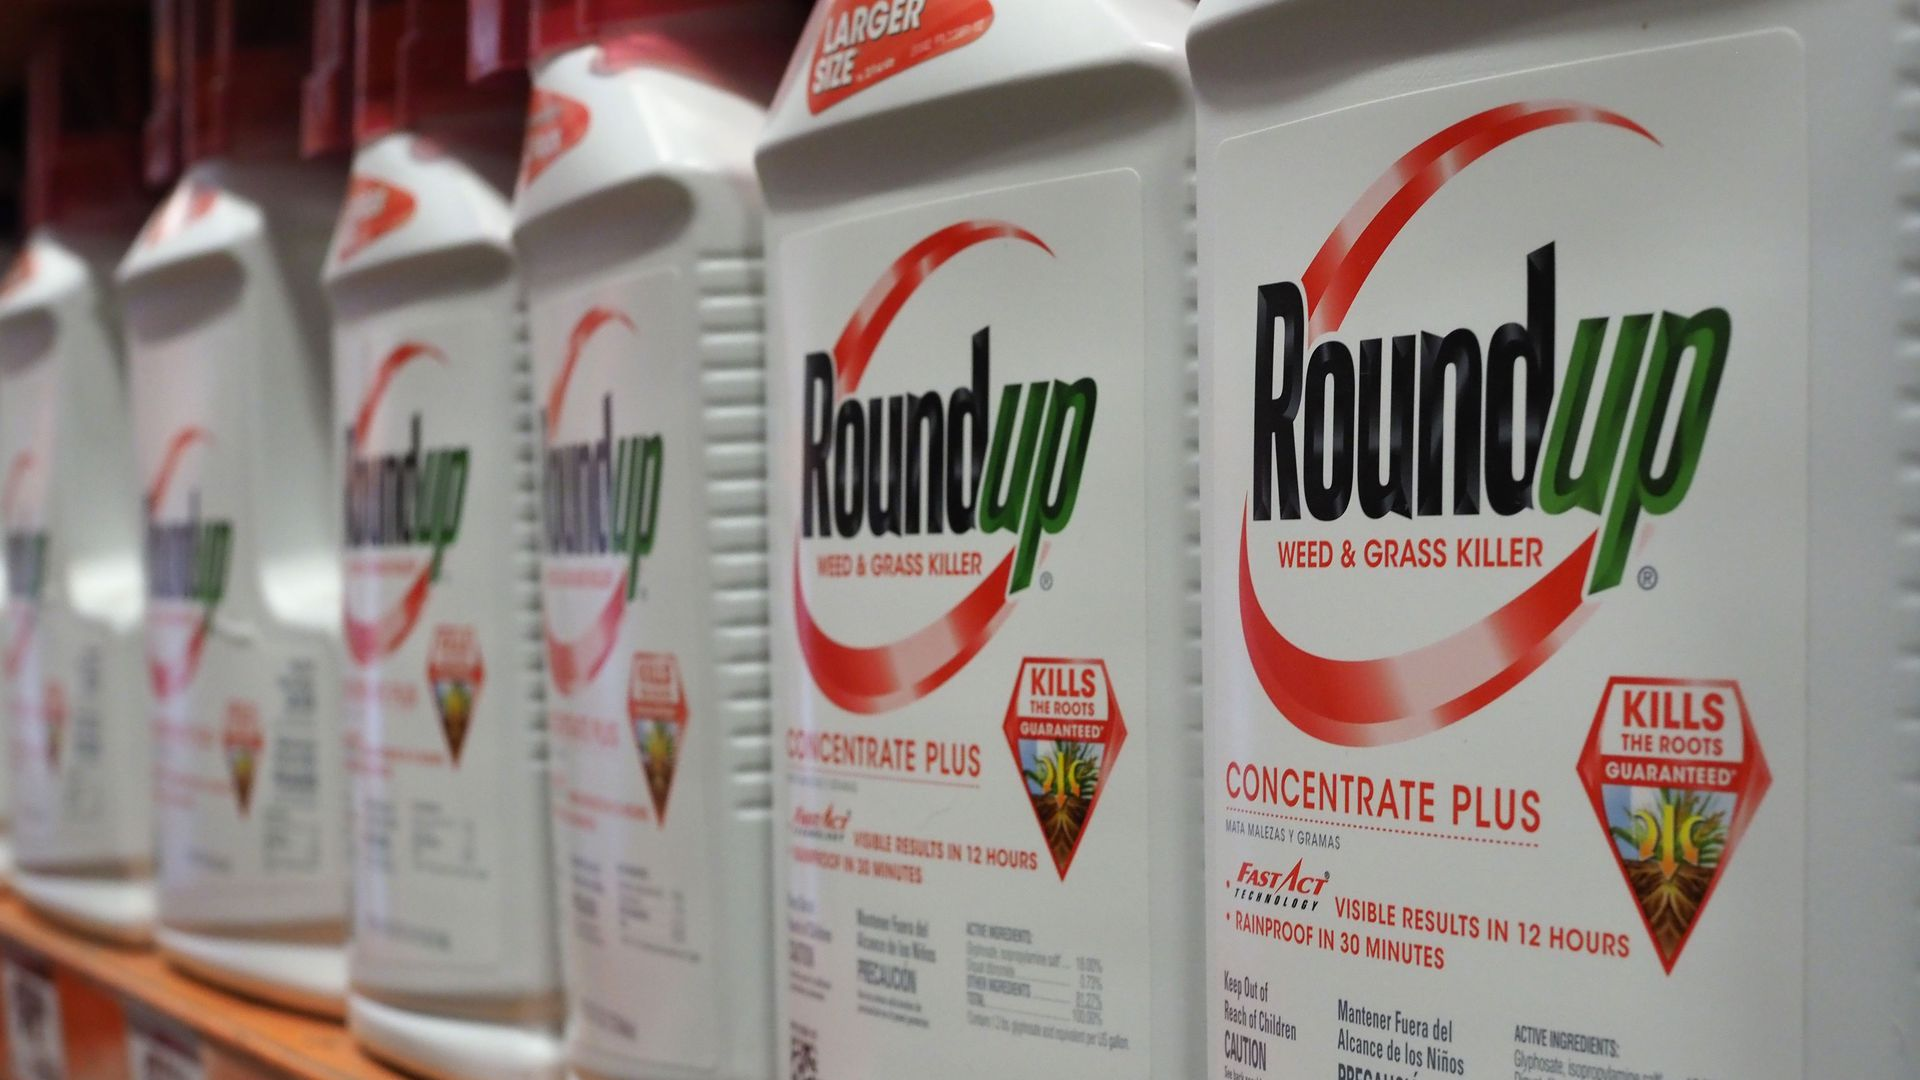 Roundup weed killer on a store shelf